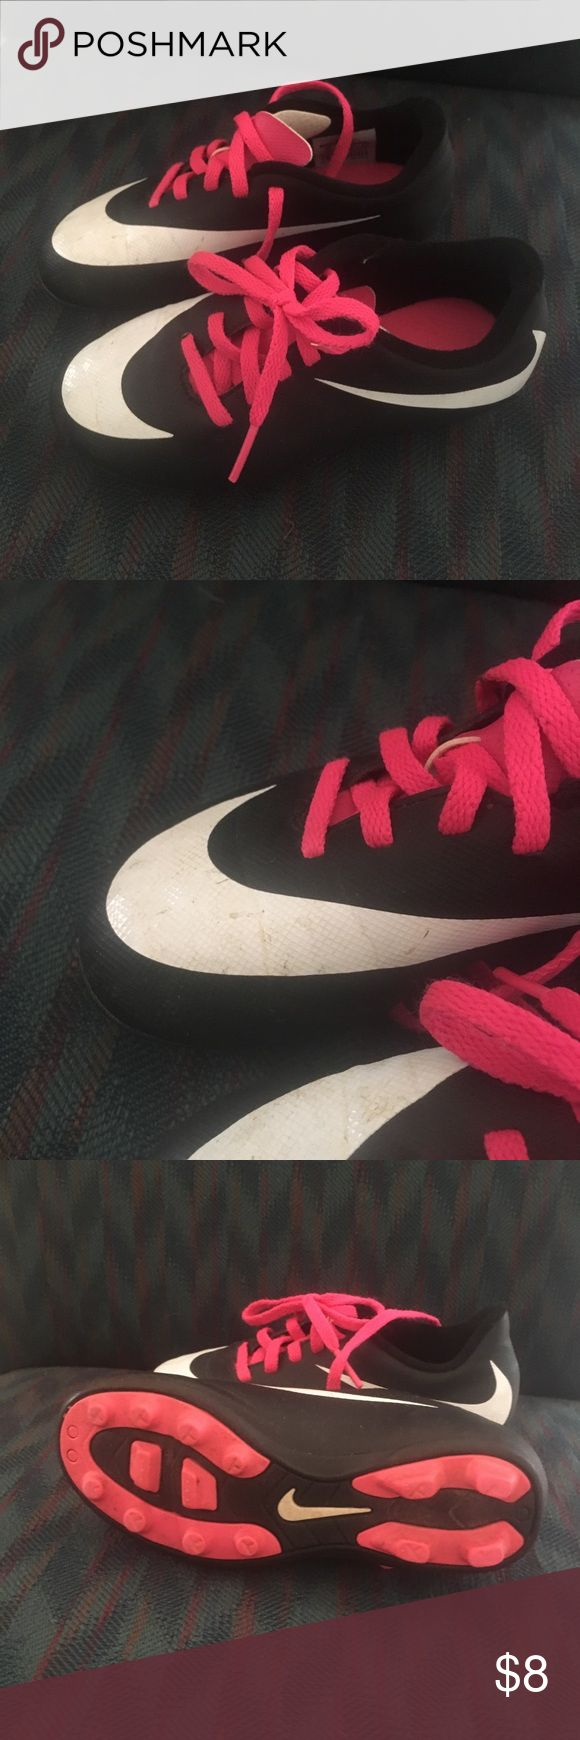 Nike girl soccer shoes. VGUC Nike Soccer Shoes Kids size 11. White does show usage. Please see pictures. Nike Shoes